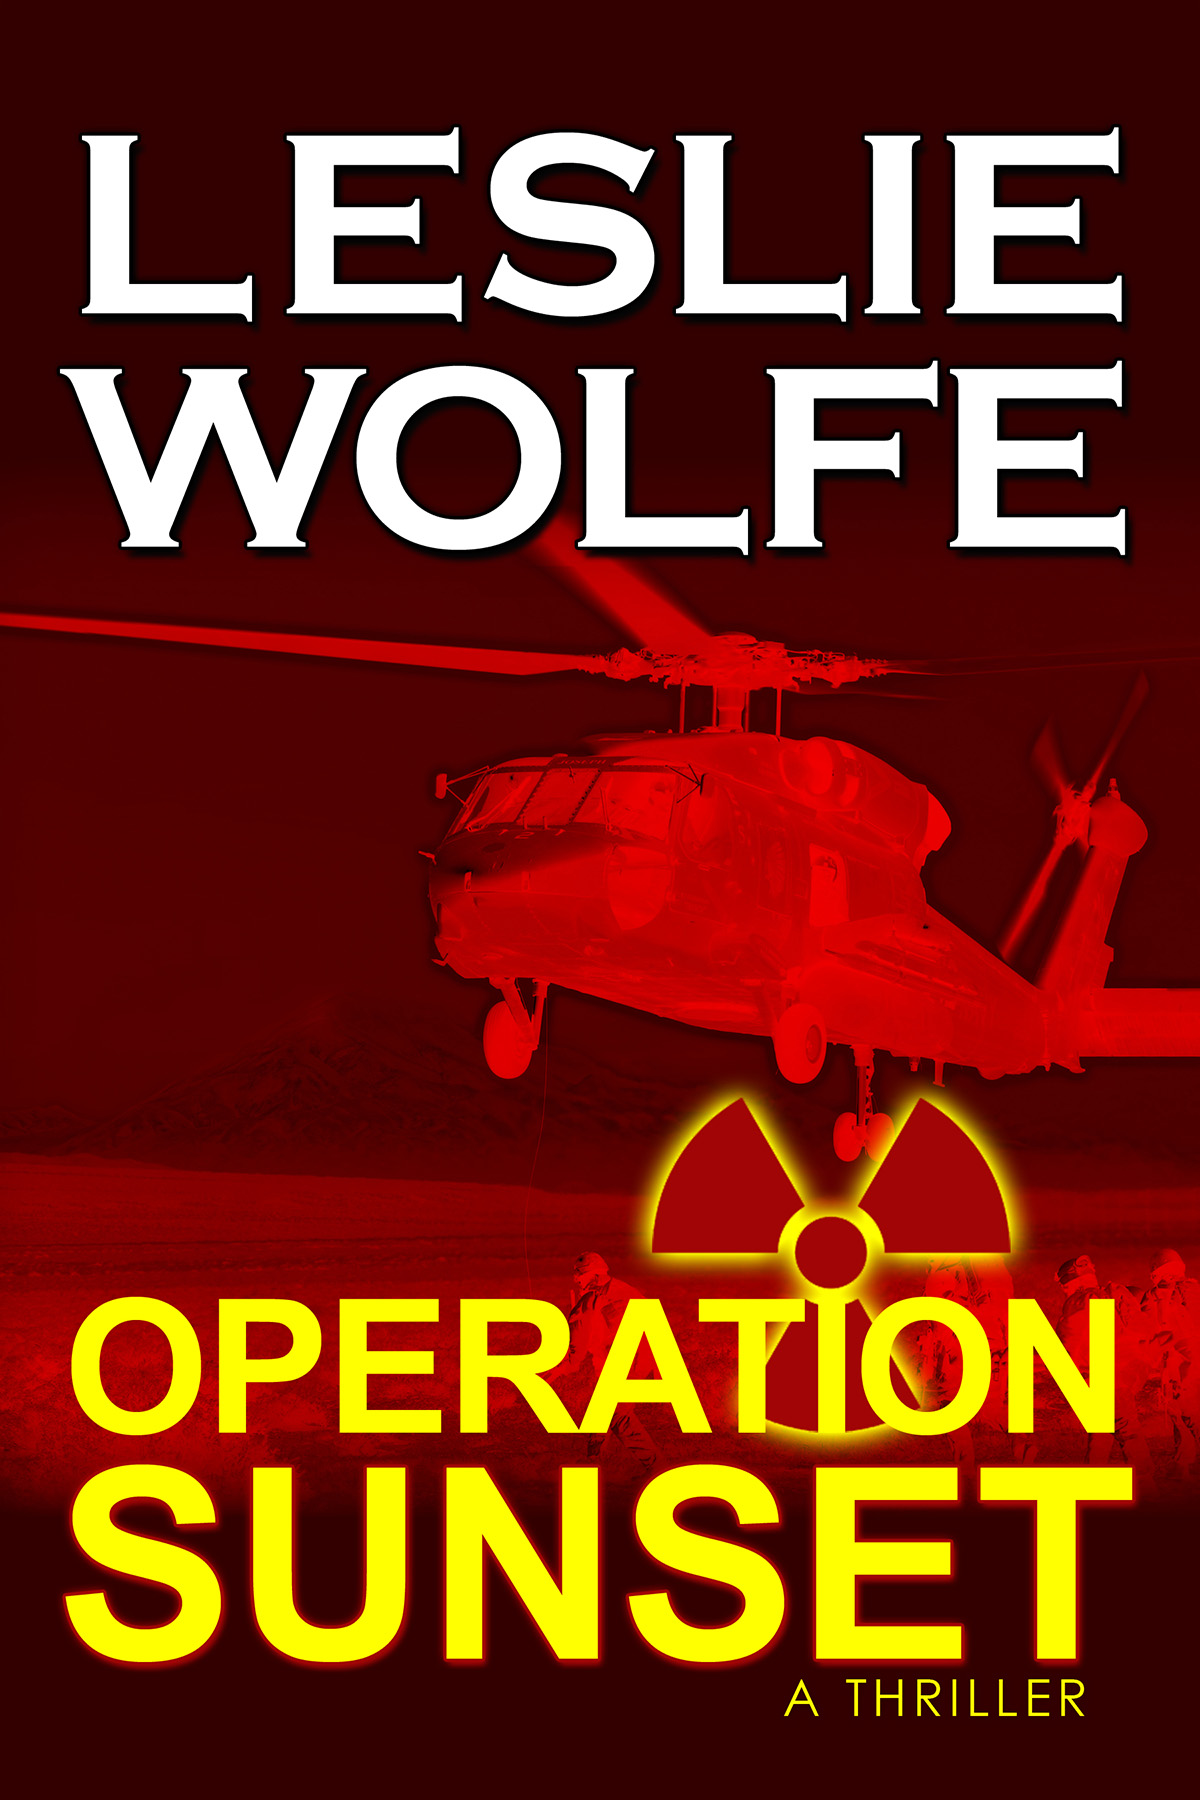 Operation Sunset by Leslie Wolfe